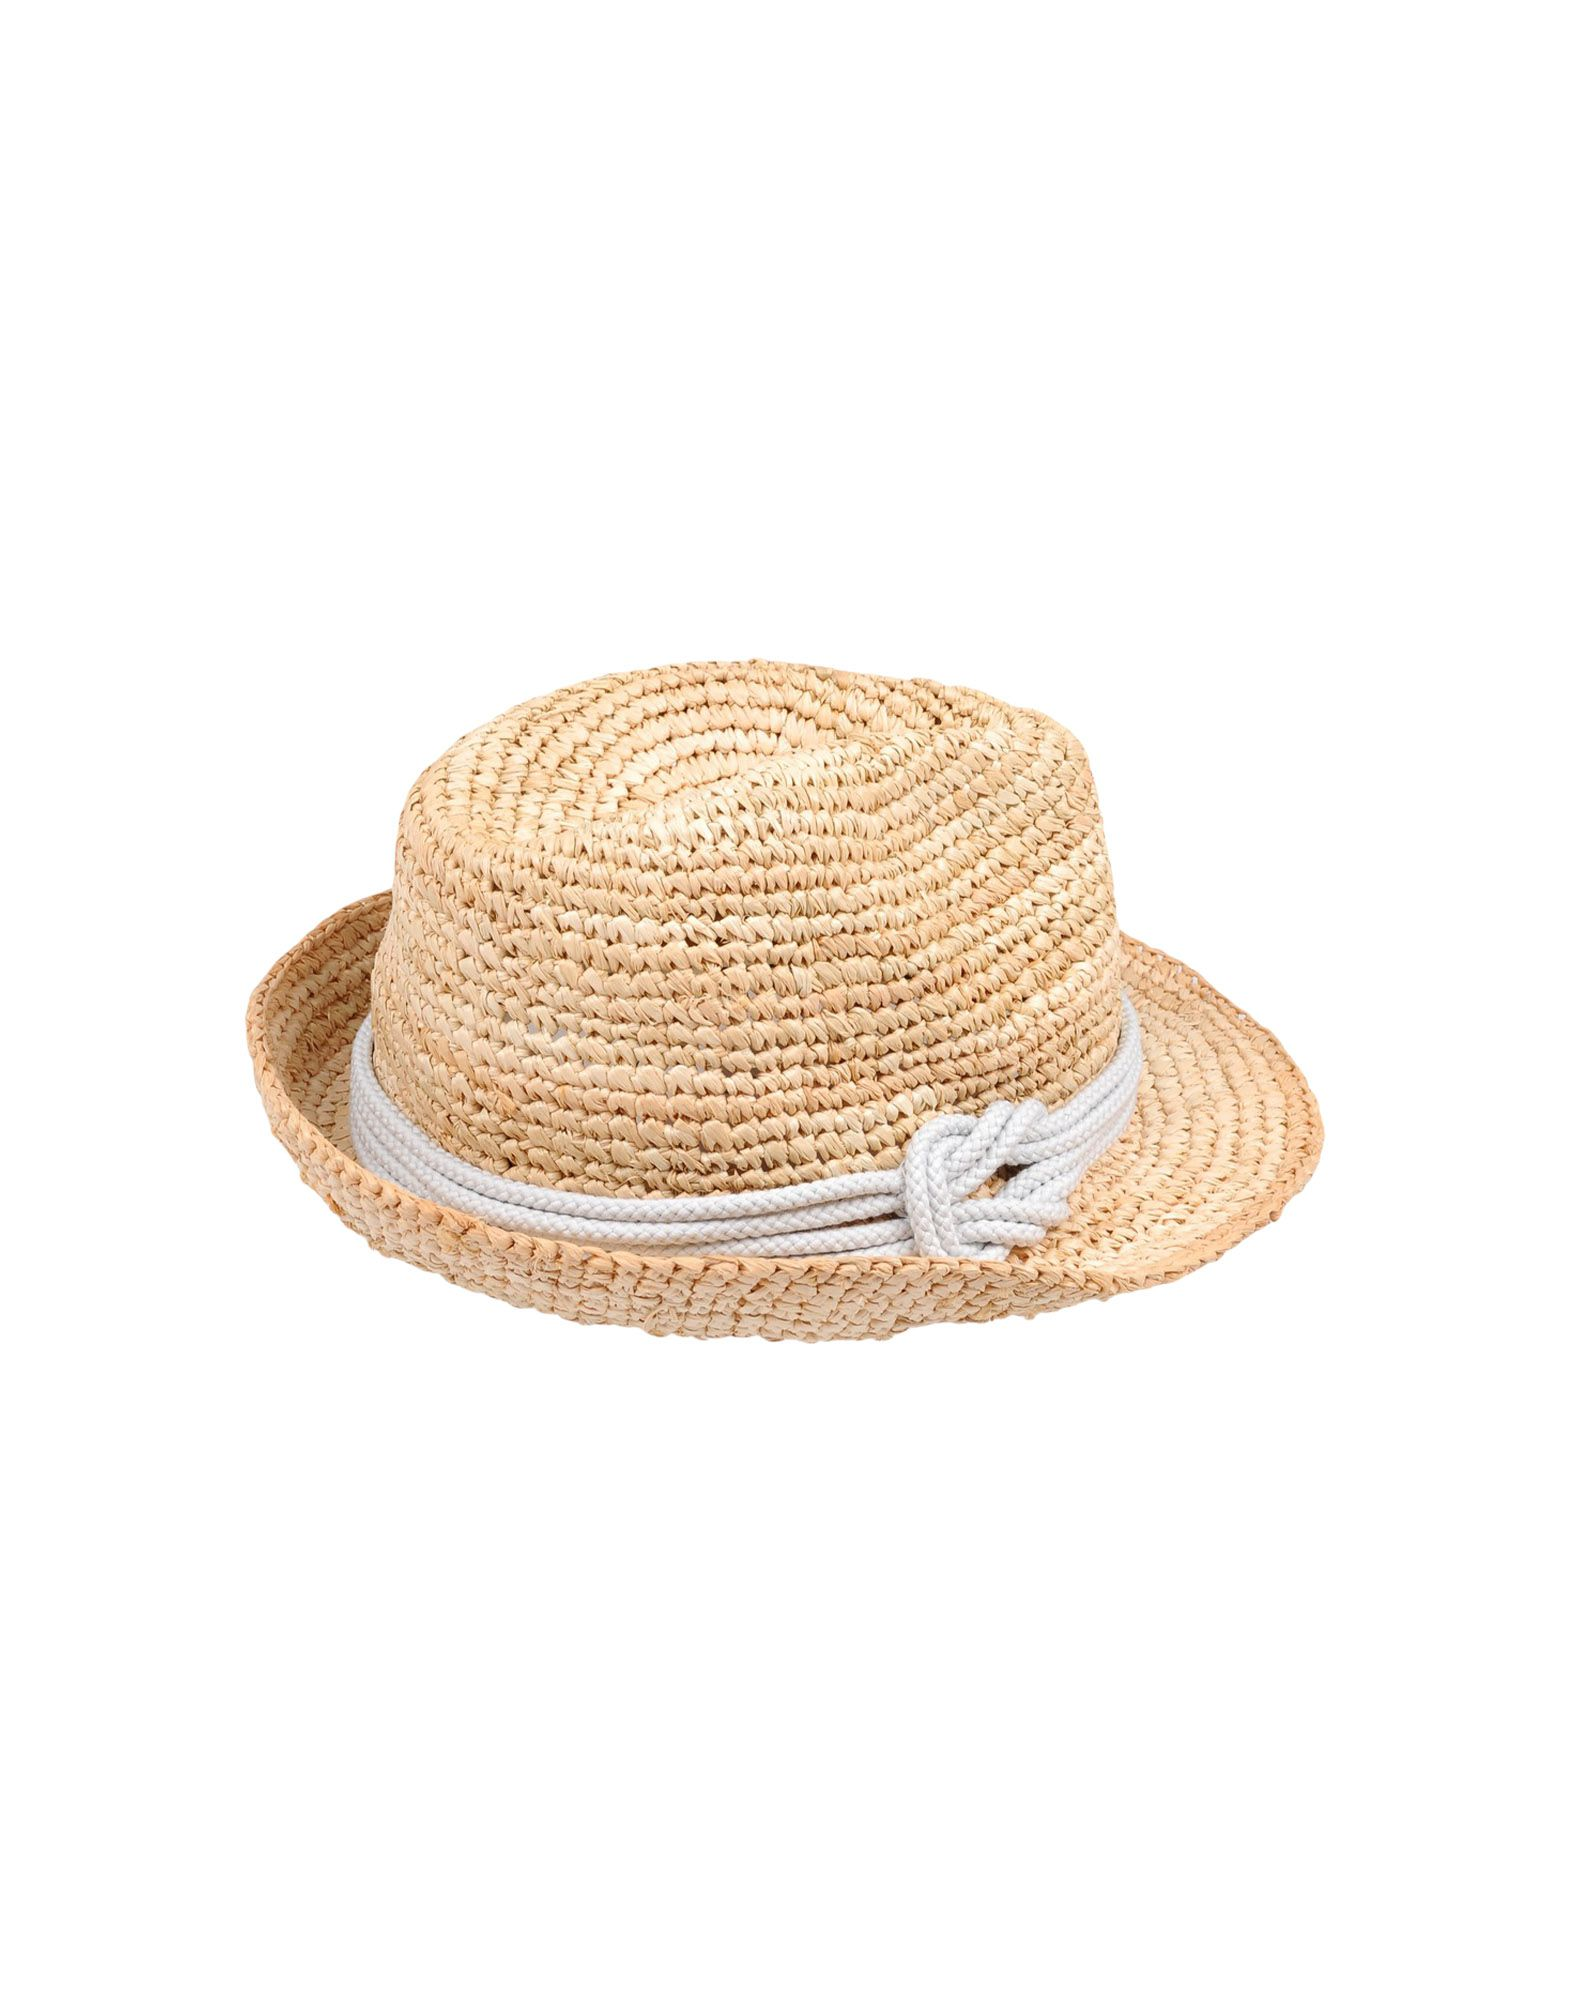 TRACY WATTS Hat in Sand